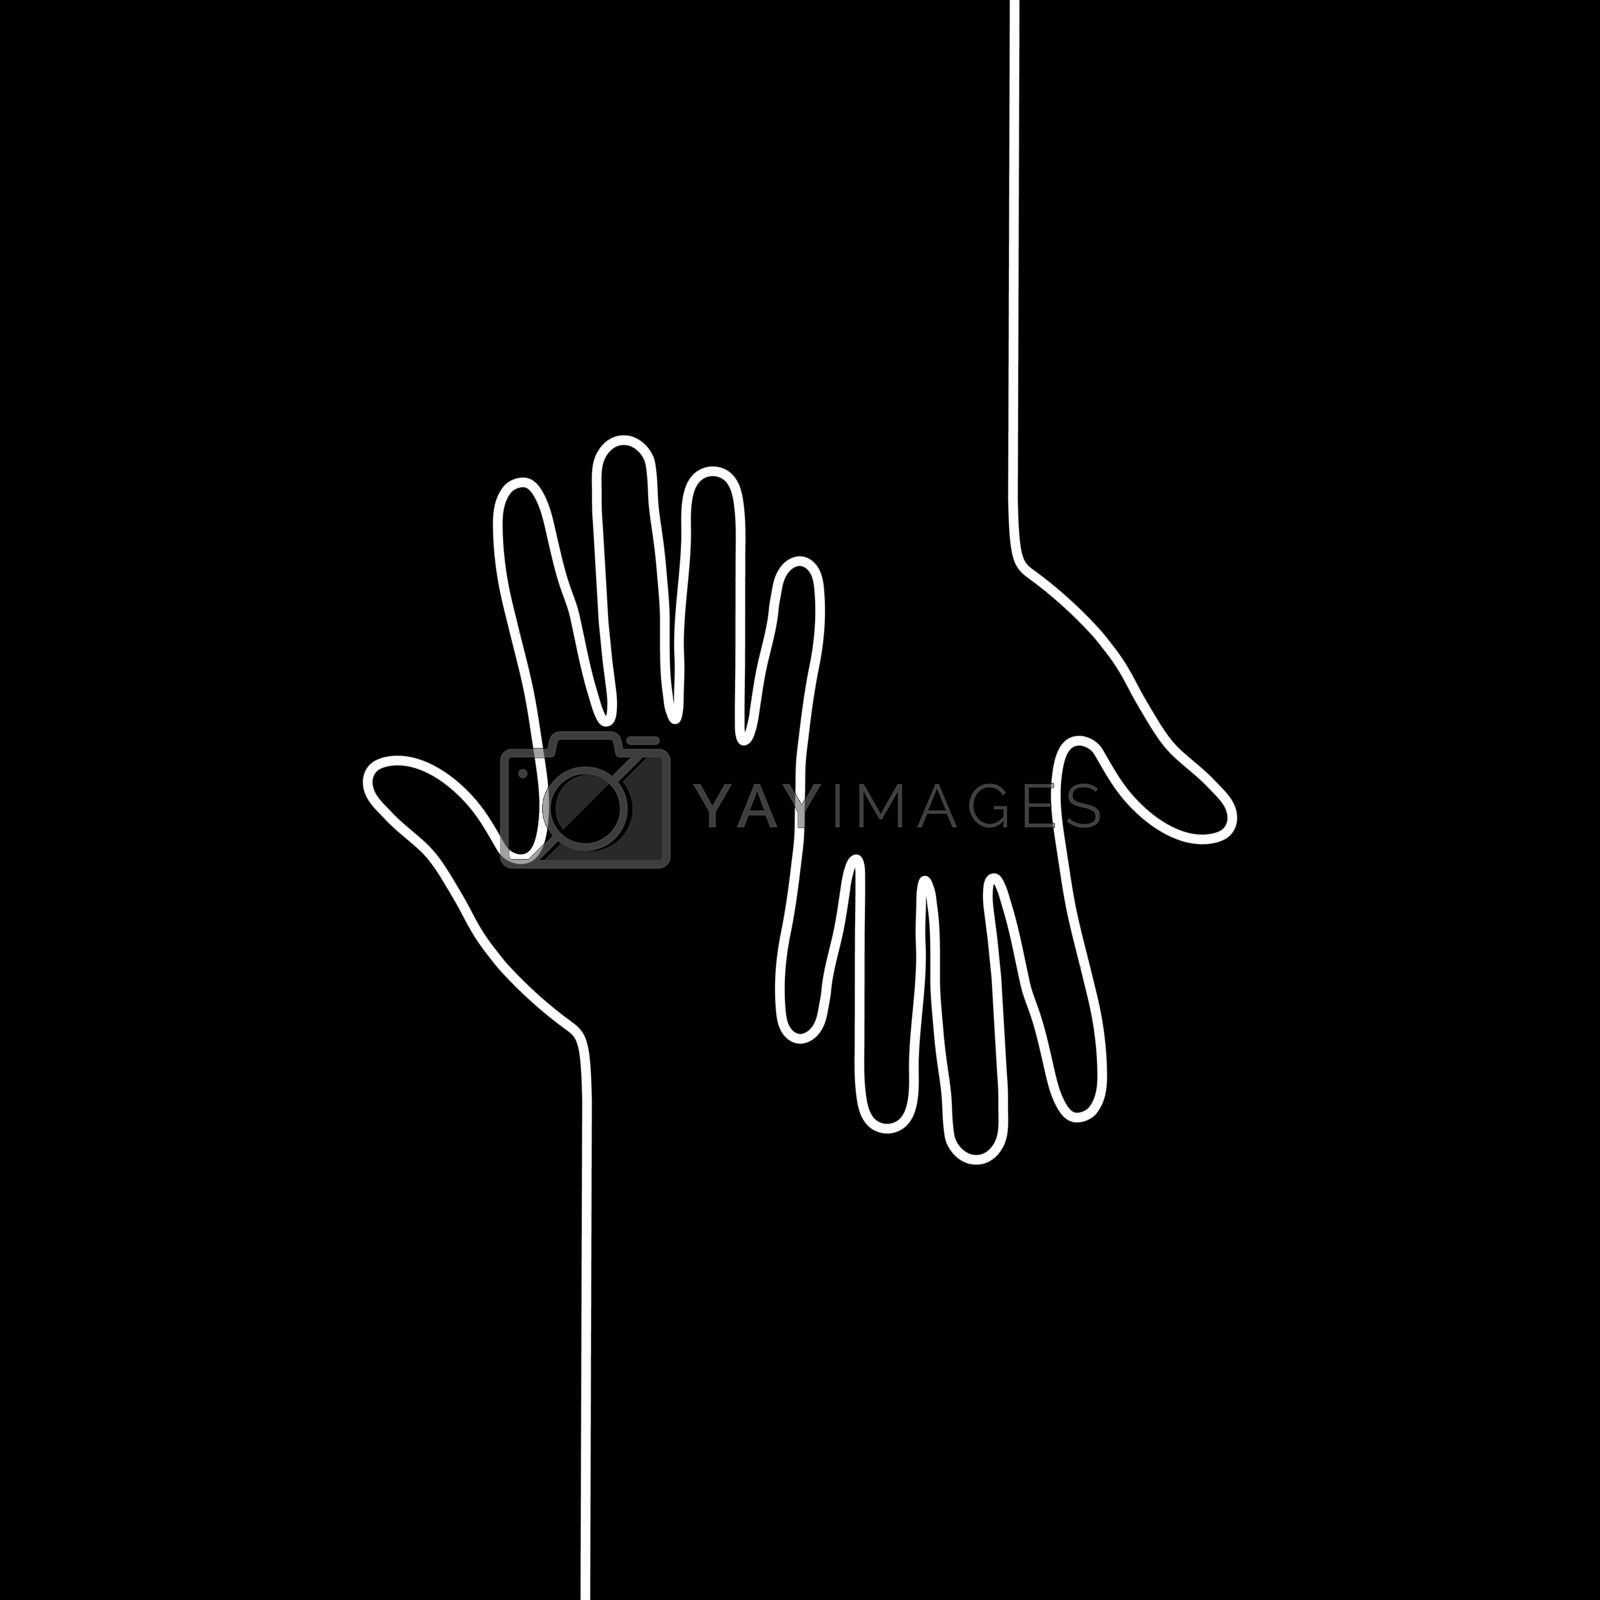 Royalty free image of White outline of two hands with fingers on black background, fla by Grommik